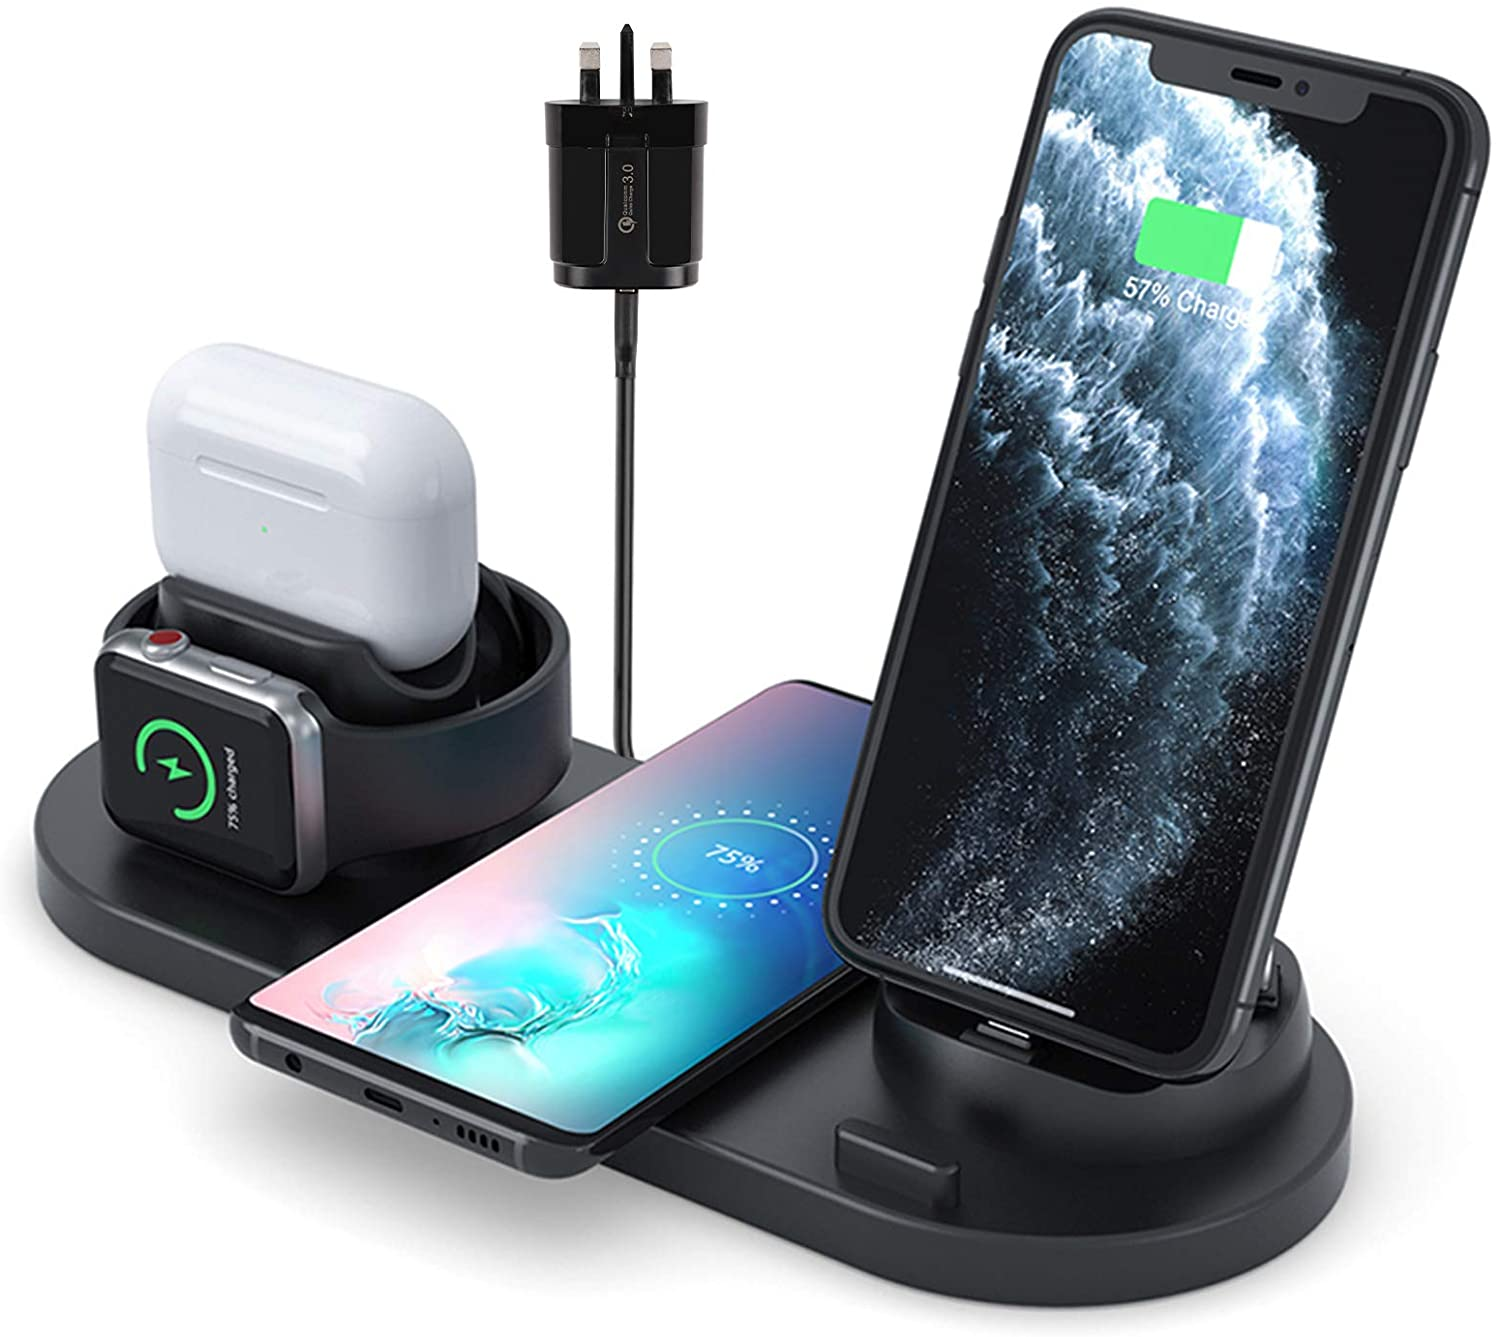 Innoo Tech Wireless Charger, 6 in 1 Wireless Fast Charging Stand for Apple Watch/AirPods/iPhone 12/11/11pro/11pro Max/X/XR Samsung S20/S10, Charging Dock for Other Qi Phone [QC 3.0 Adapter Included]